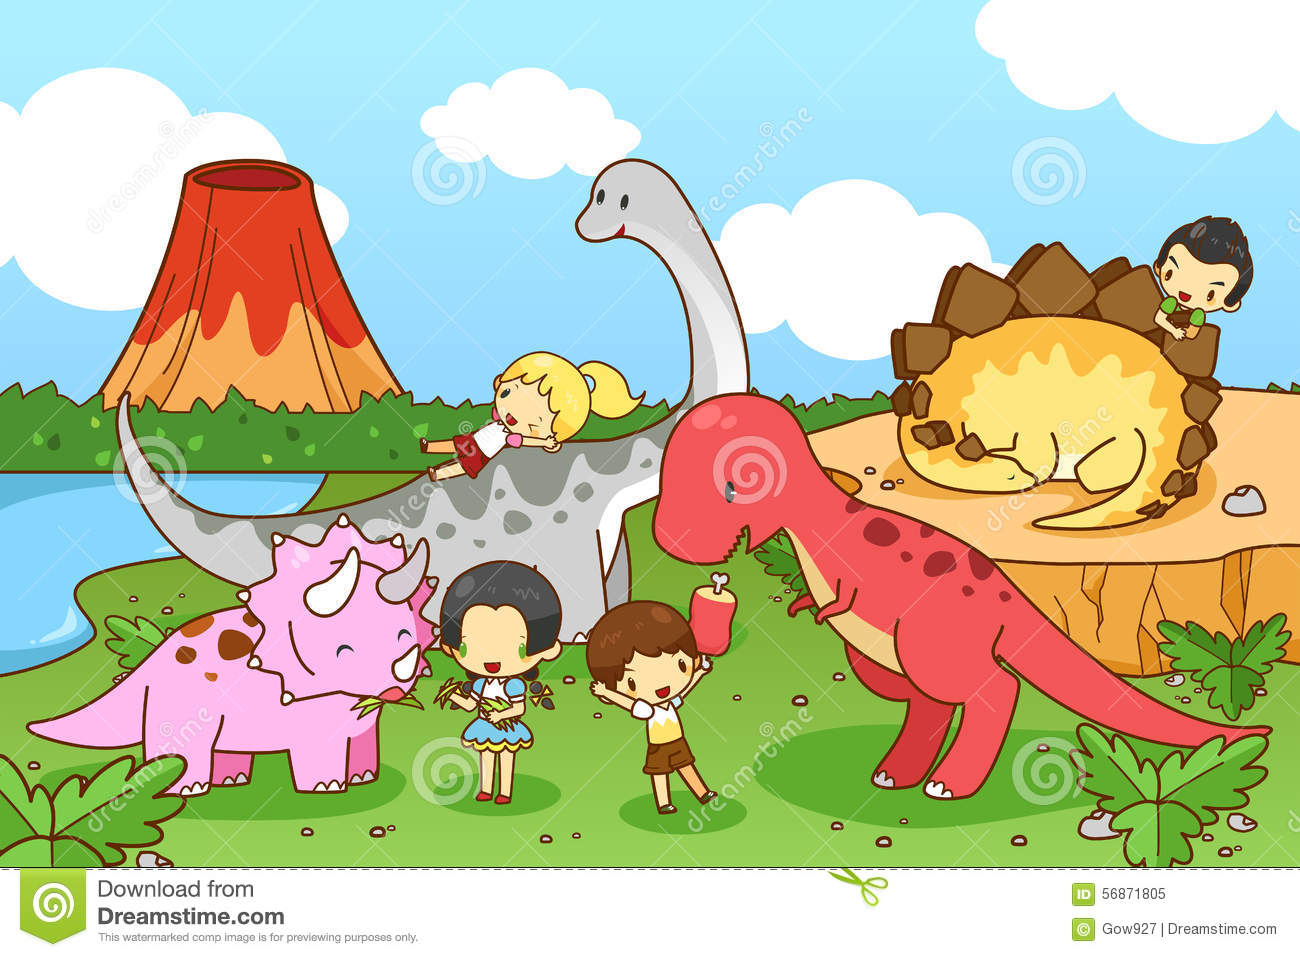 Uncategorized Dinosaur Pictures For Kids cartoon dinosaur world of imagination with kids and children pla pla